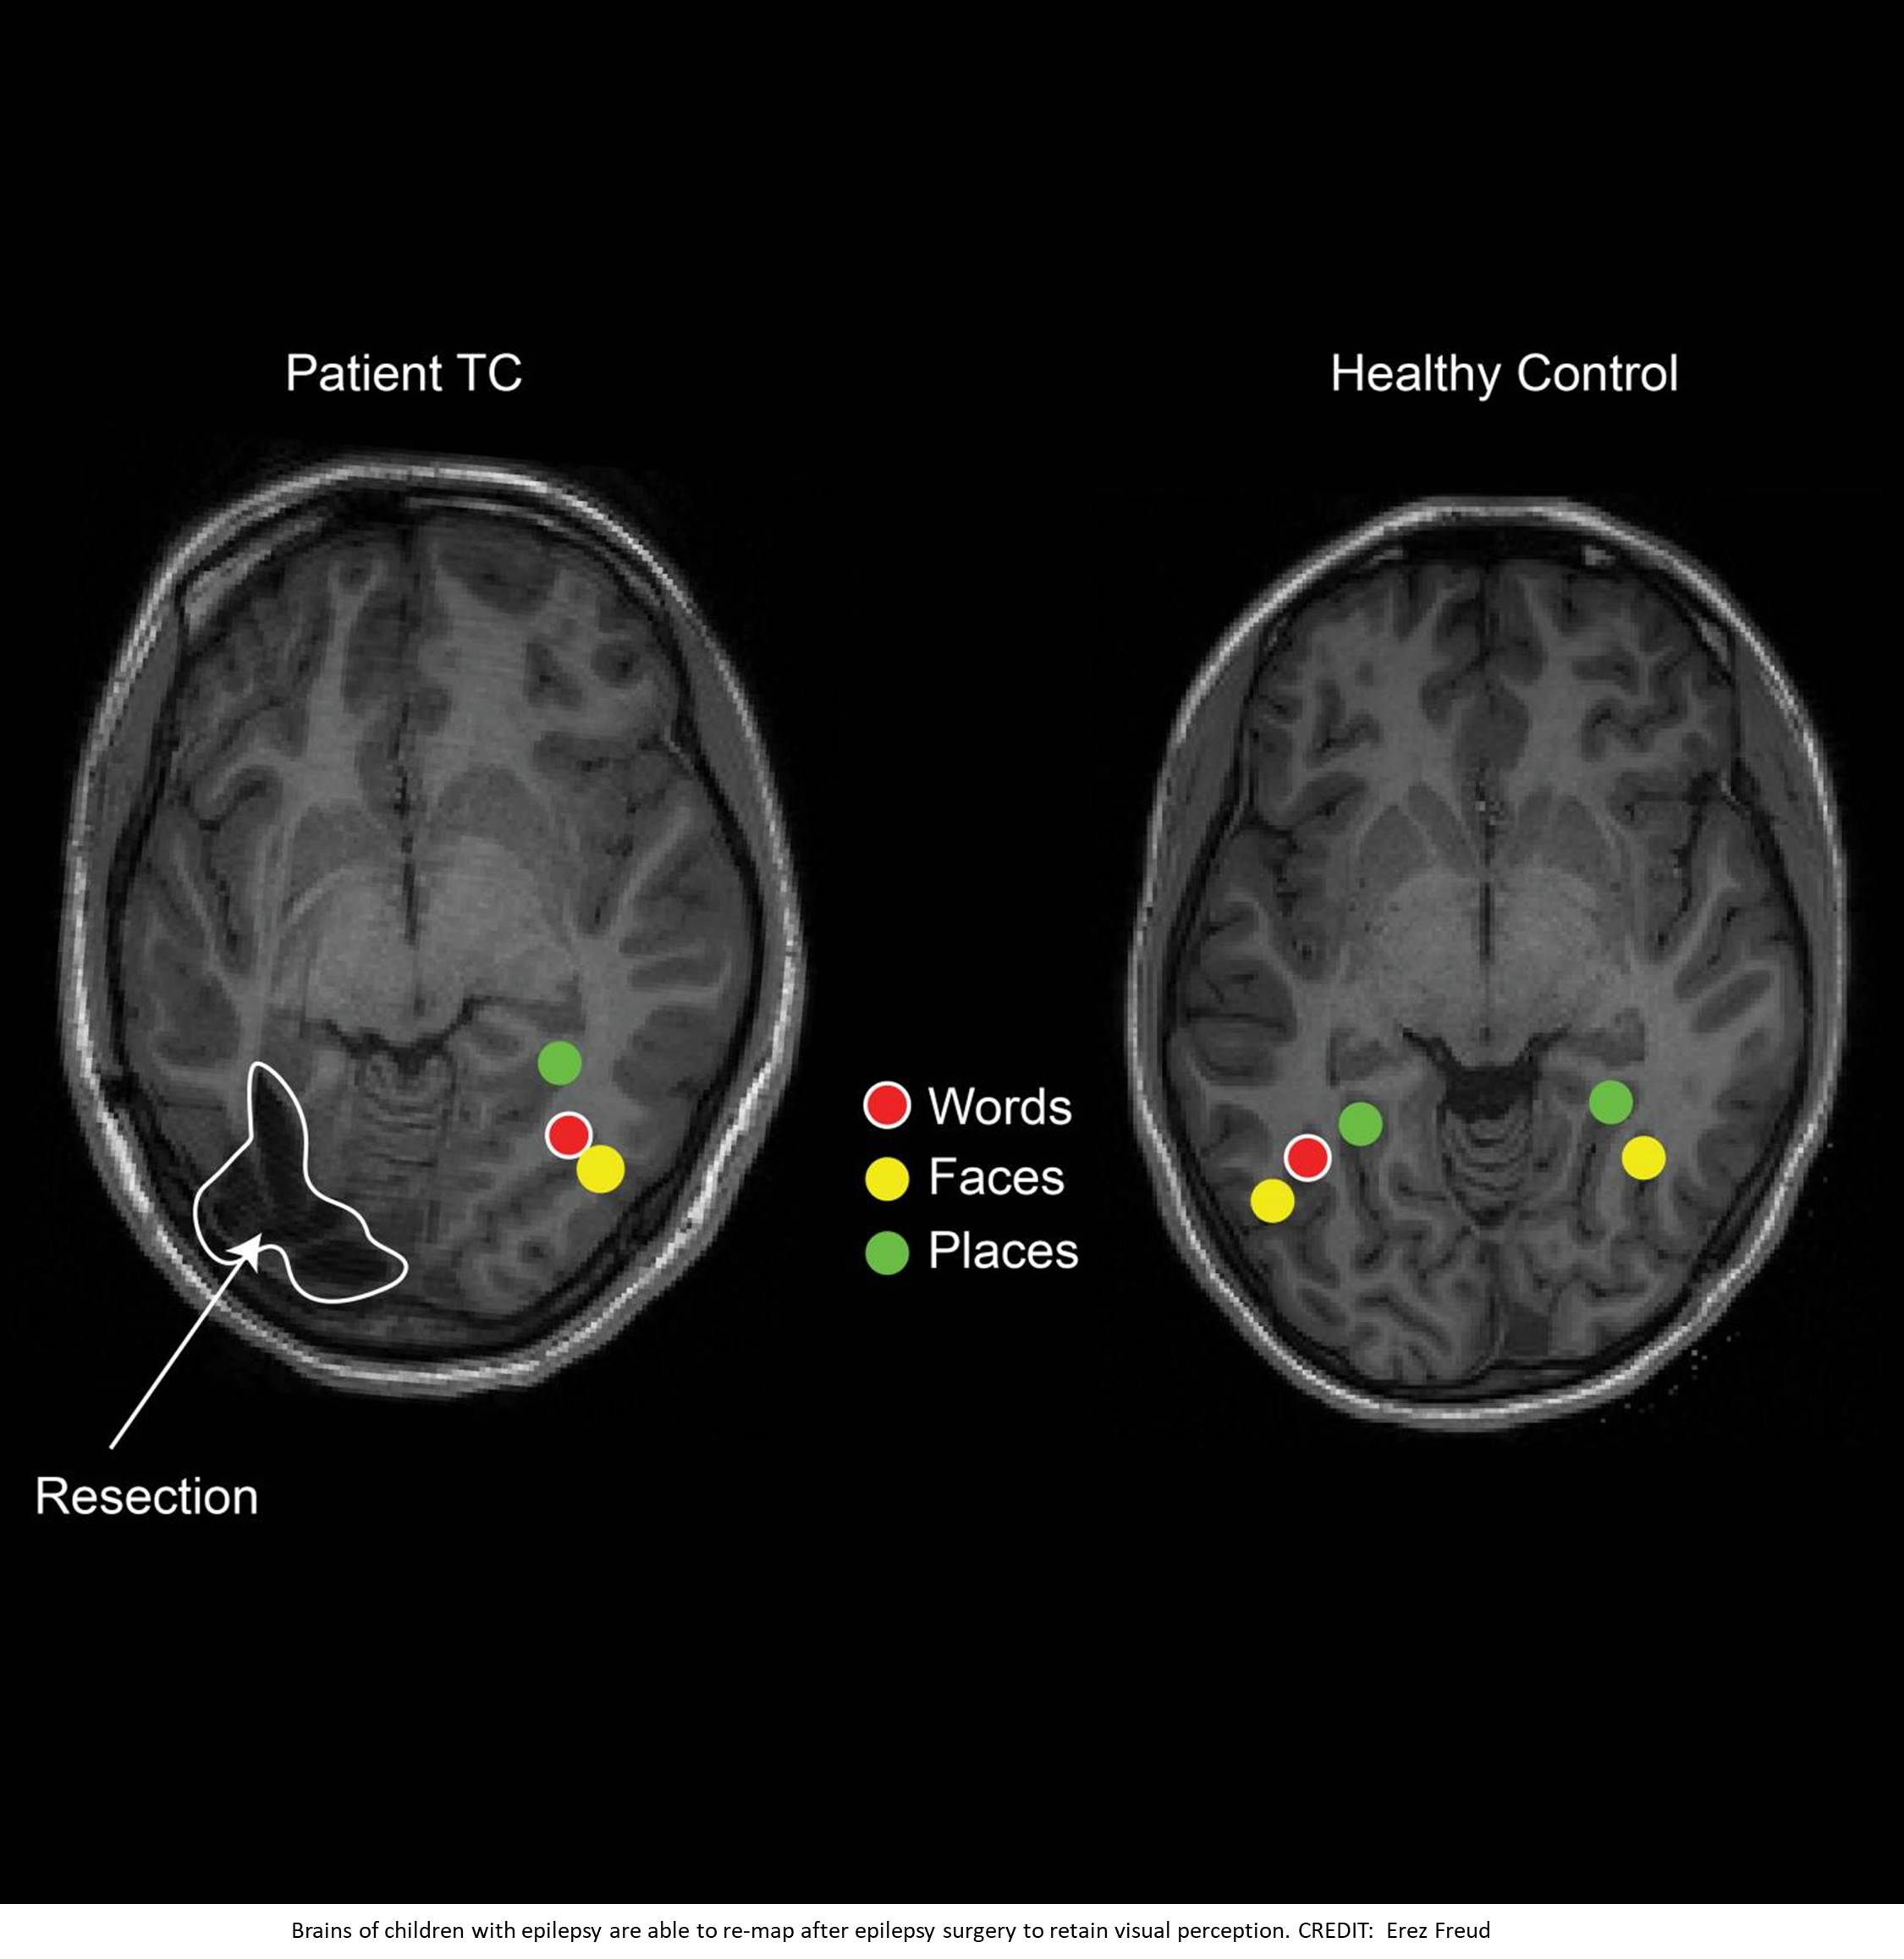 Brain rewiring after surgery children with epilepsy to retain visual perception